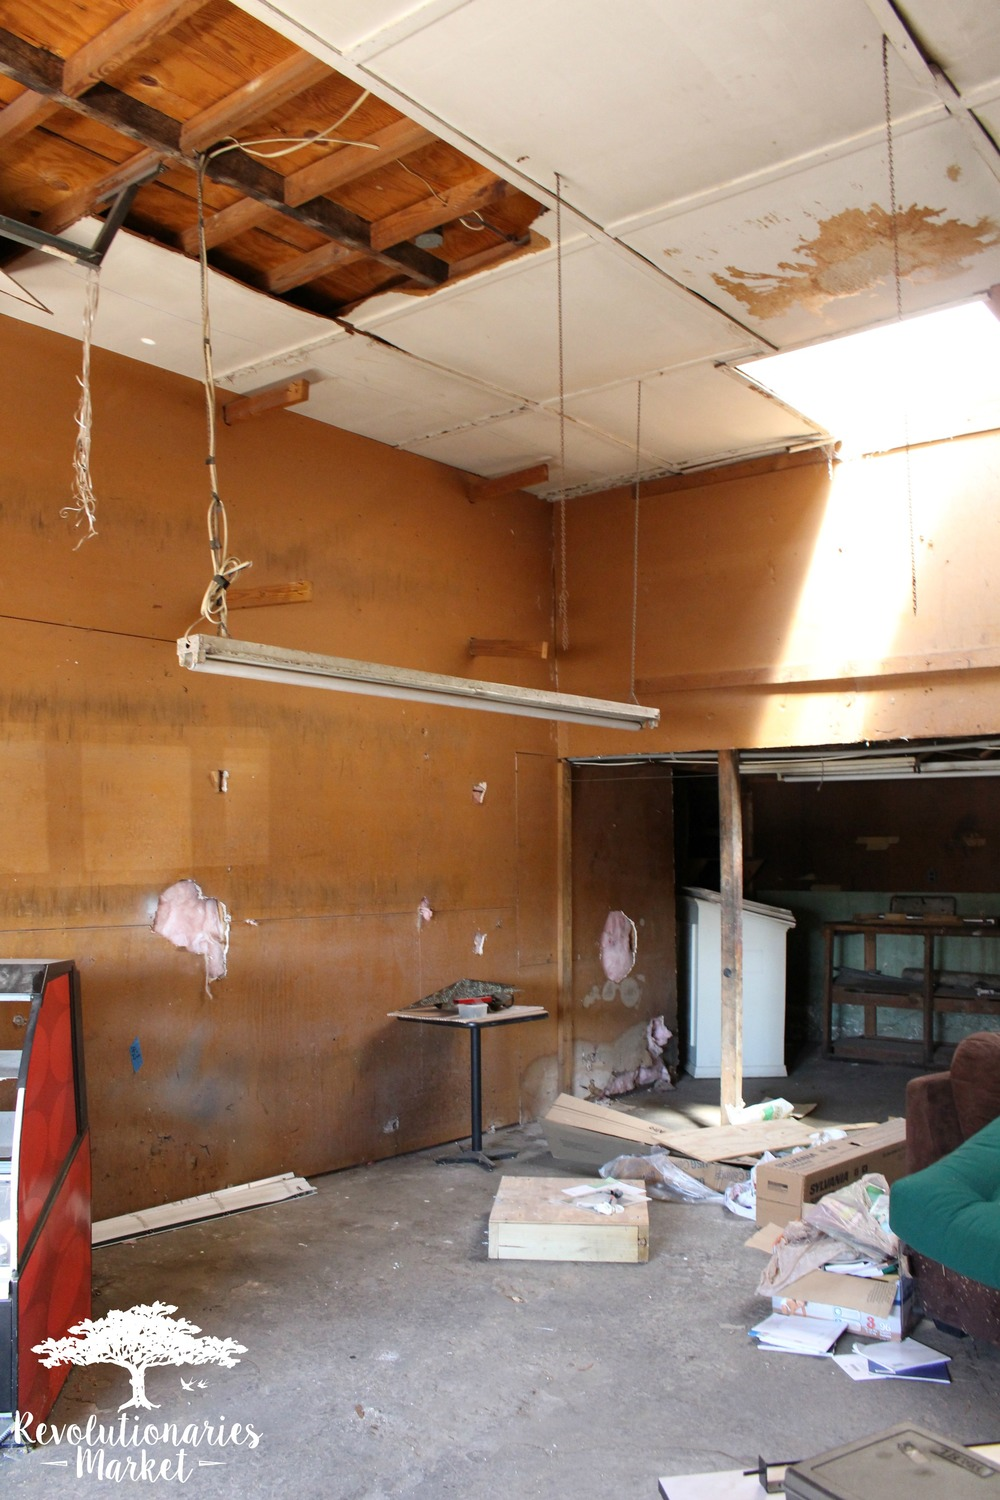 Revolutionaries Market Renovation: Before Pictures